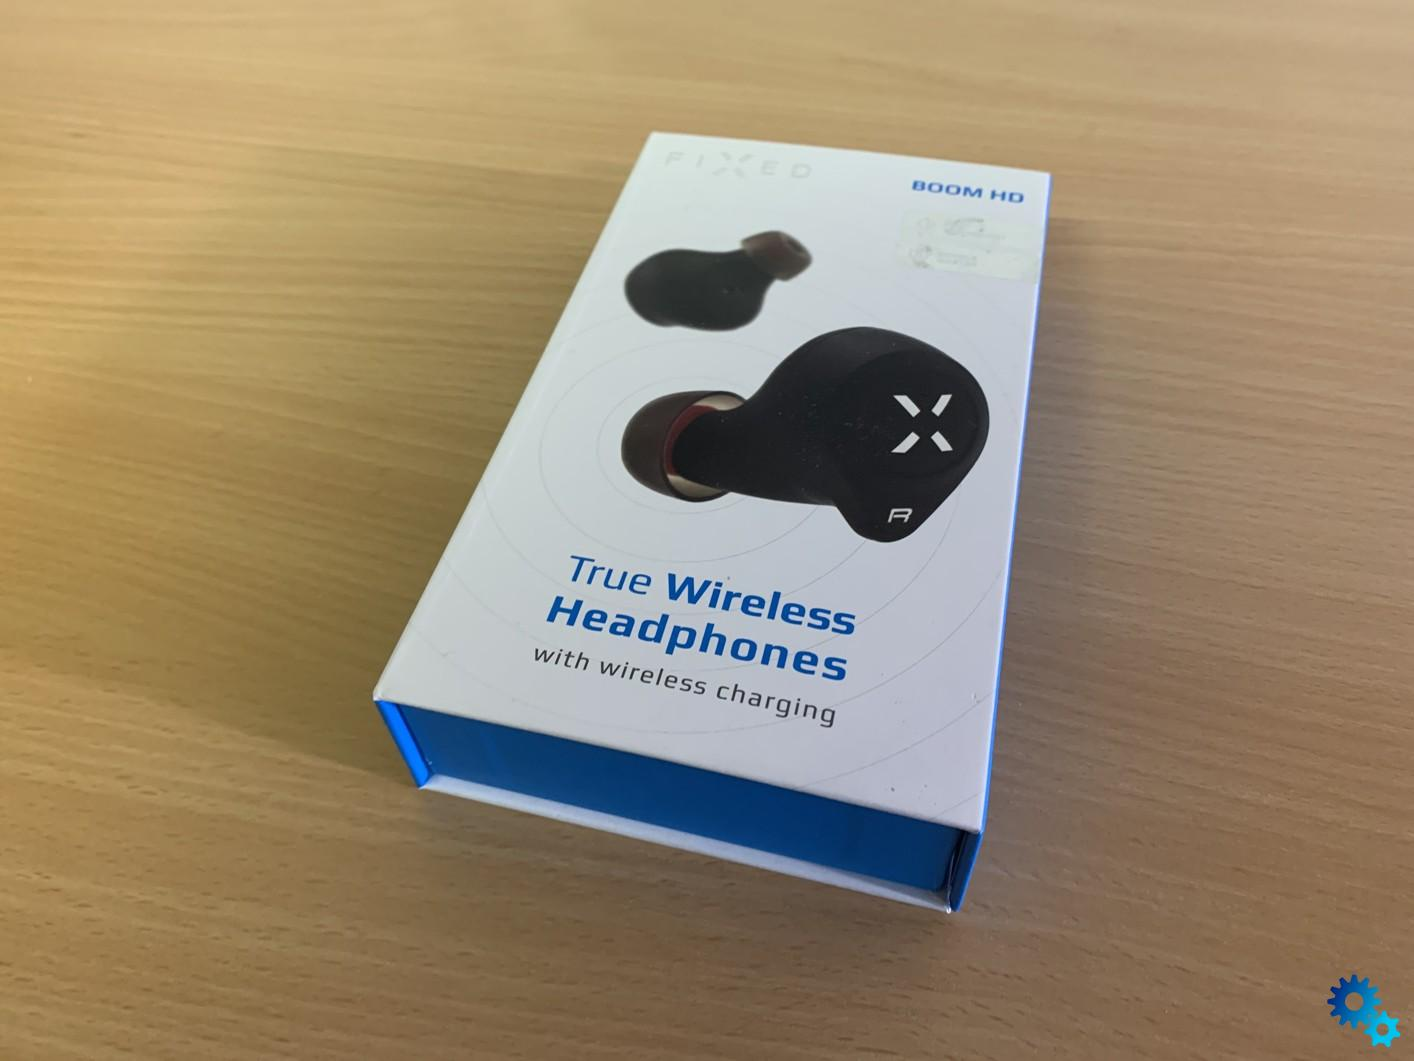 FIXED Boom HD Wireless Headphone Review: Enjoy pleasant sound and wireless charging